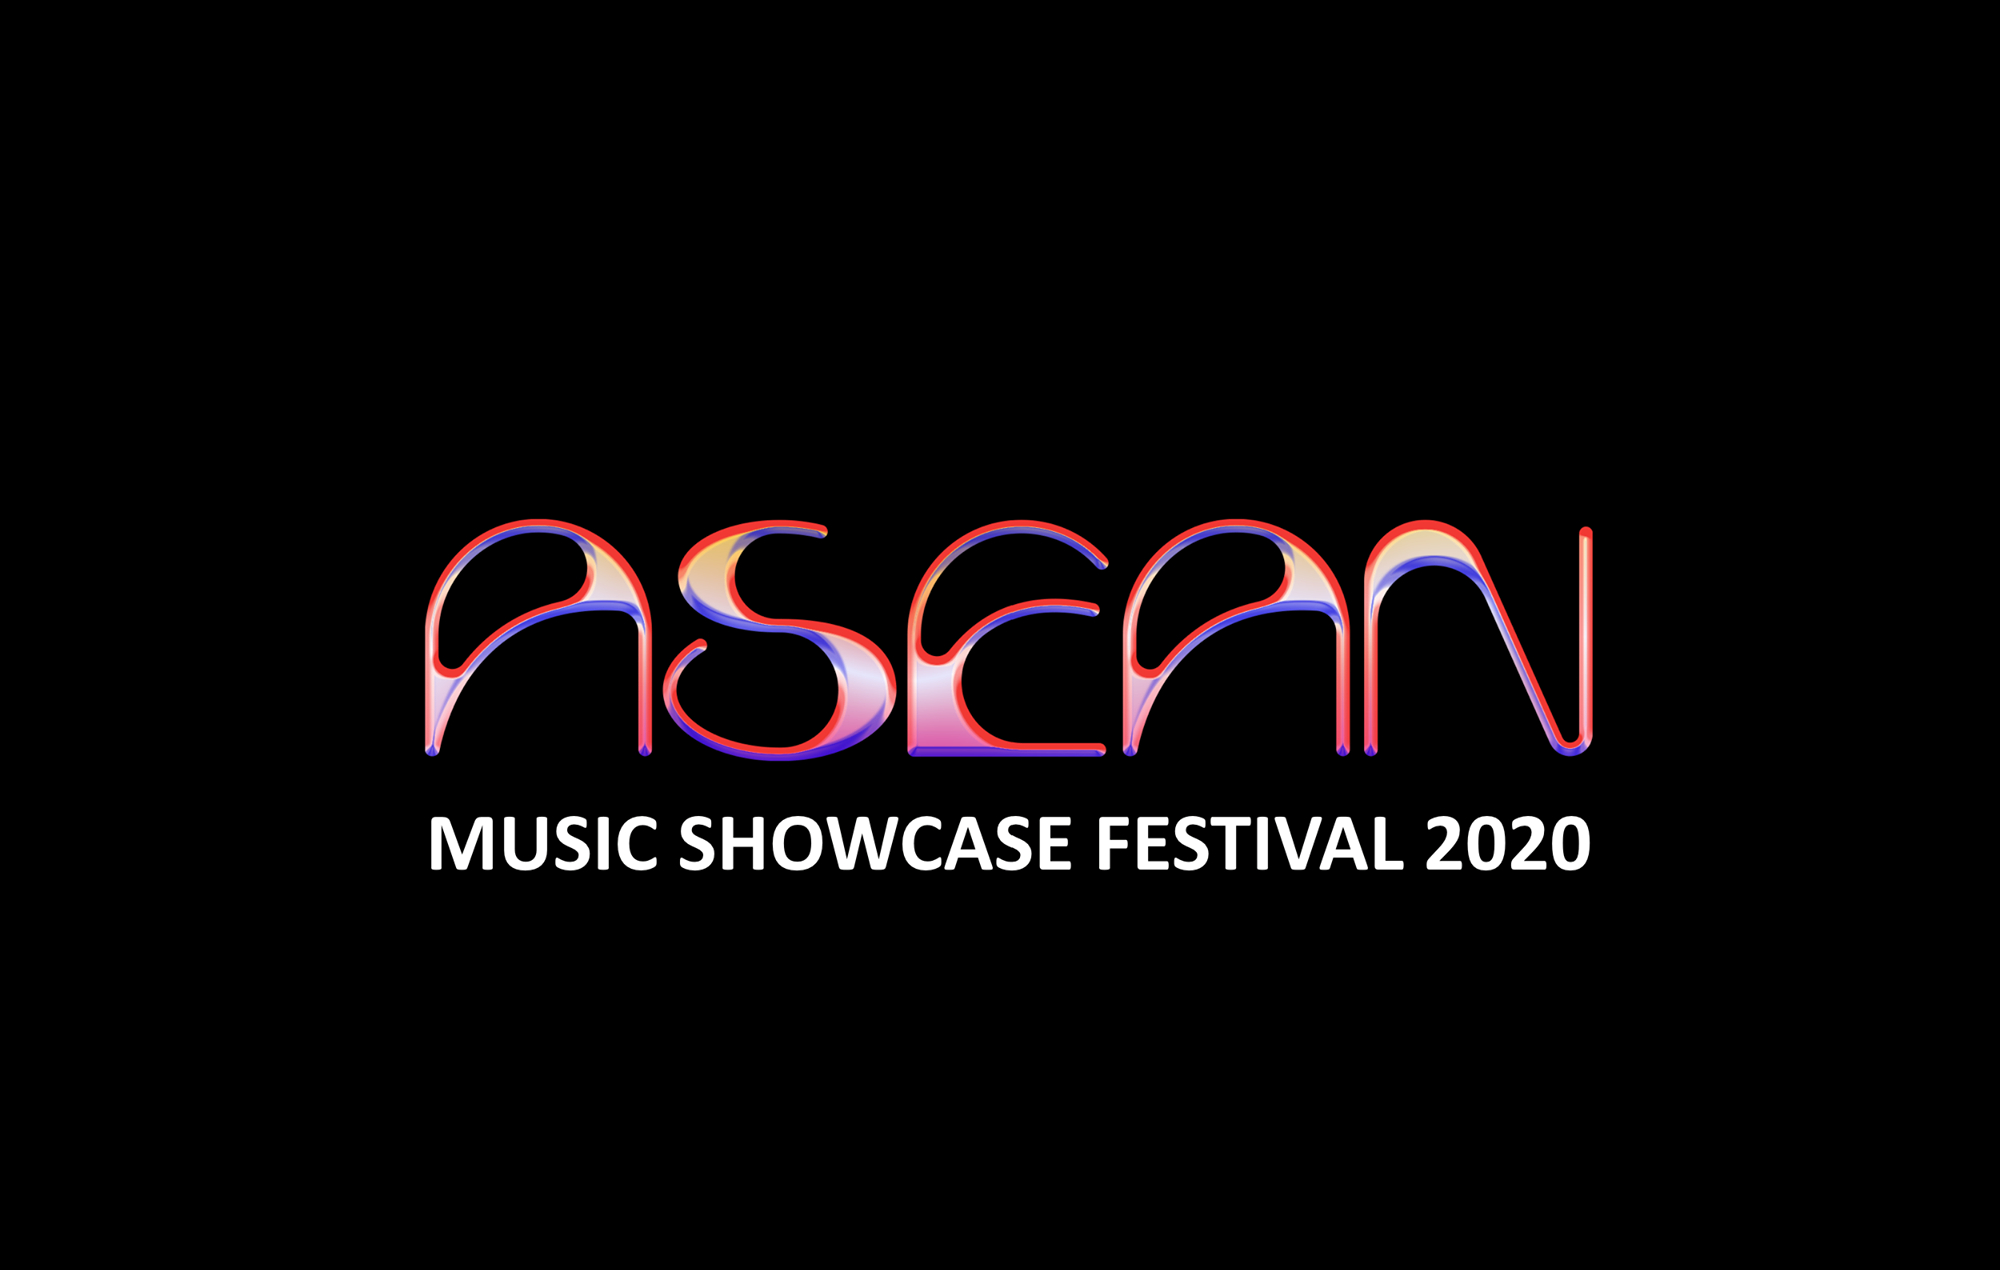 ASEAN Music Showcase Festival launches first online edition with 20 regional artists